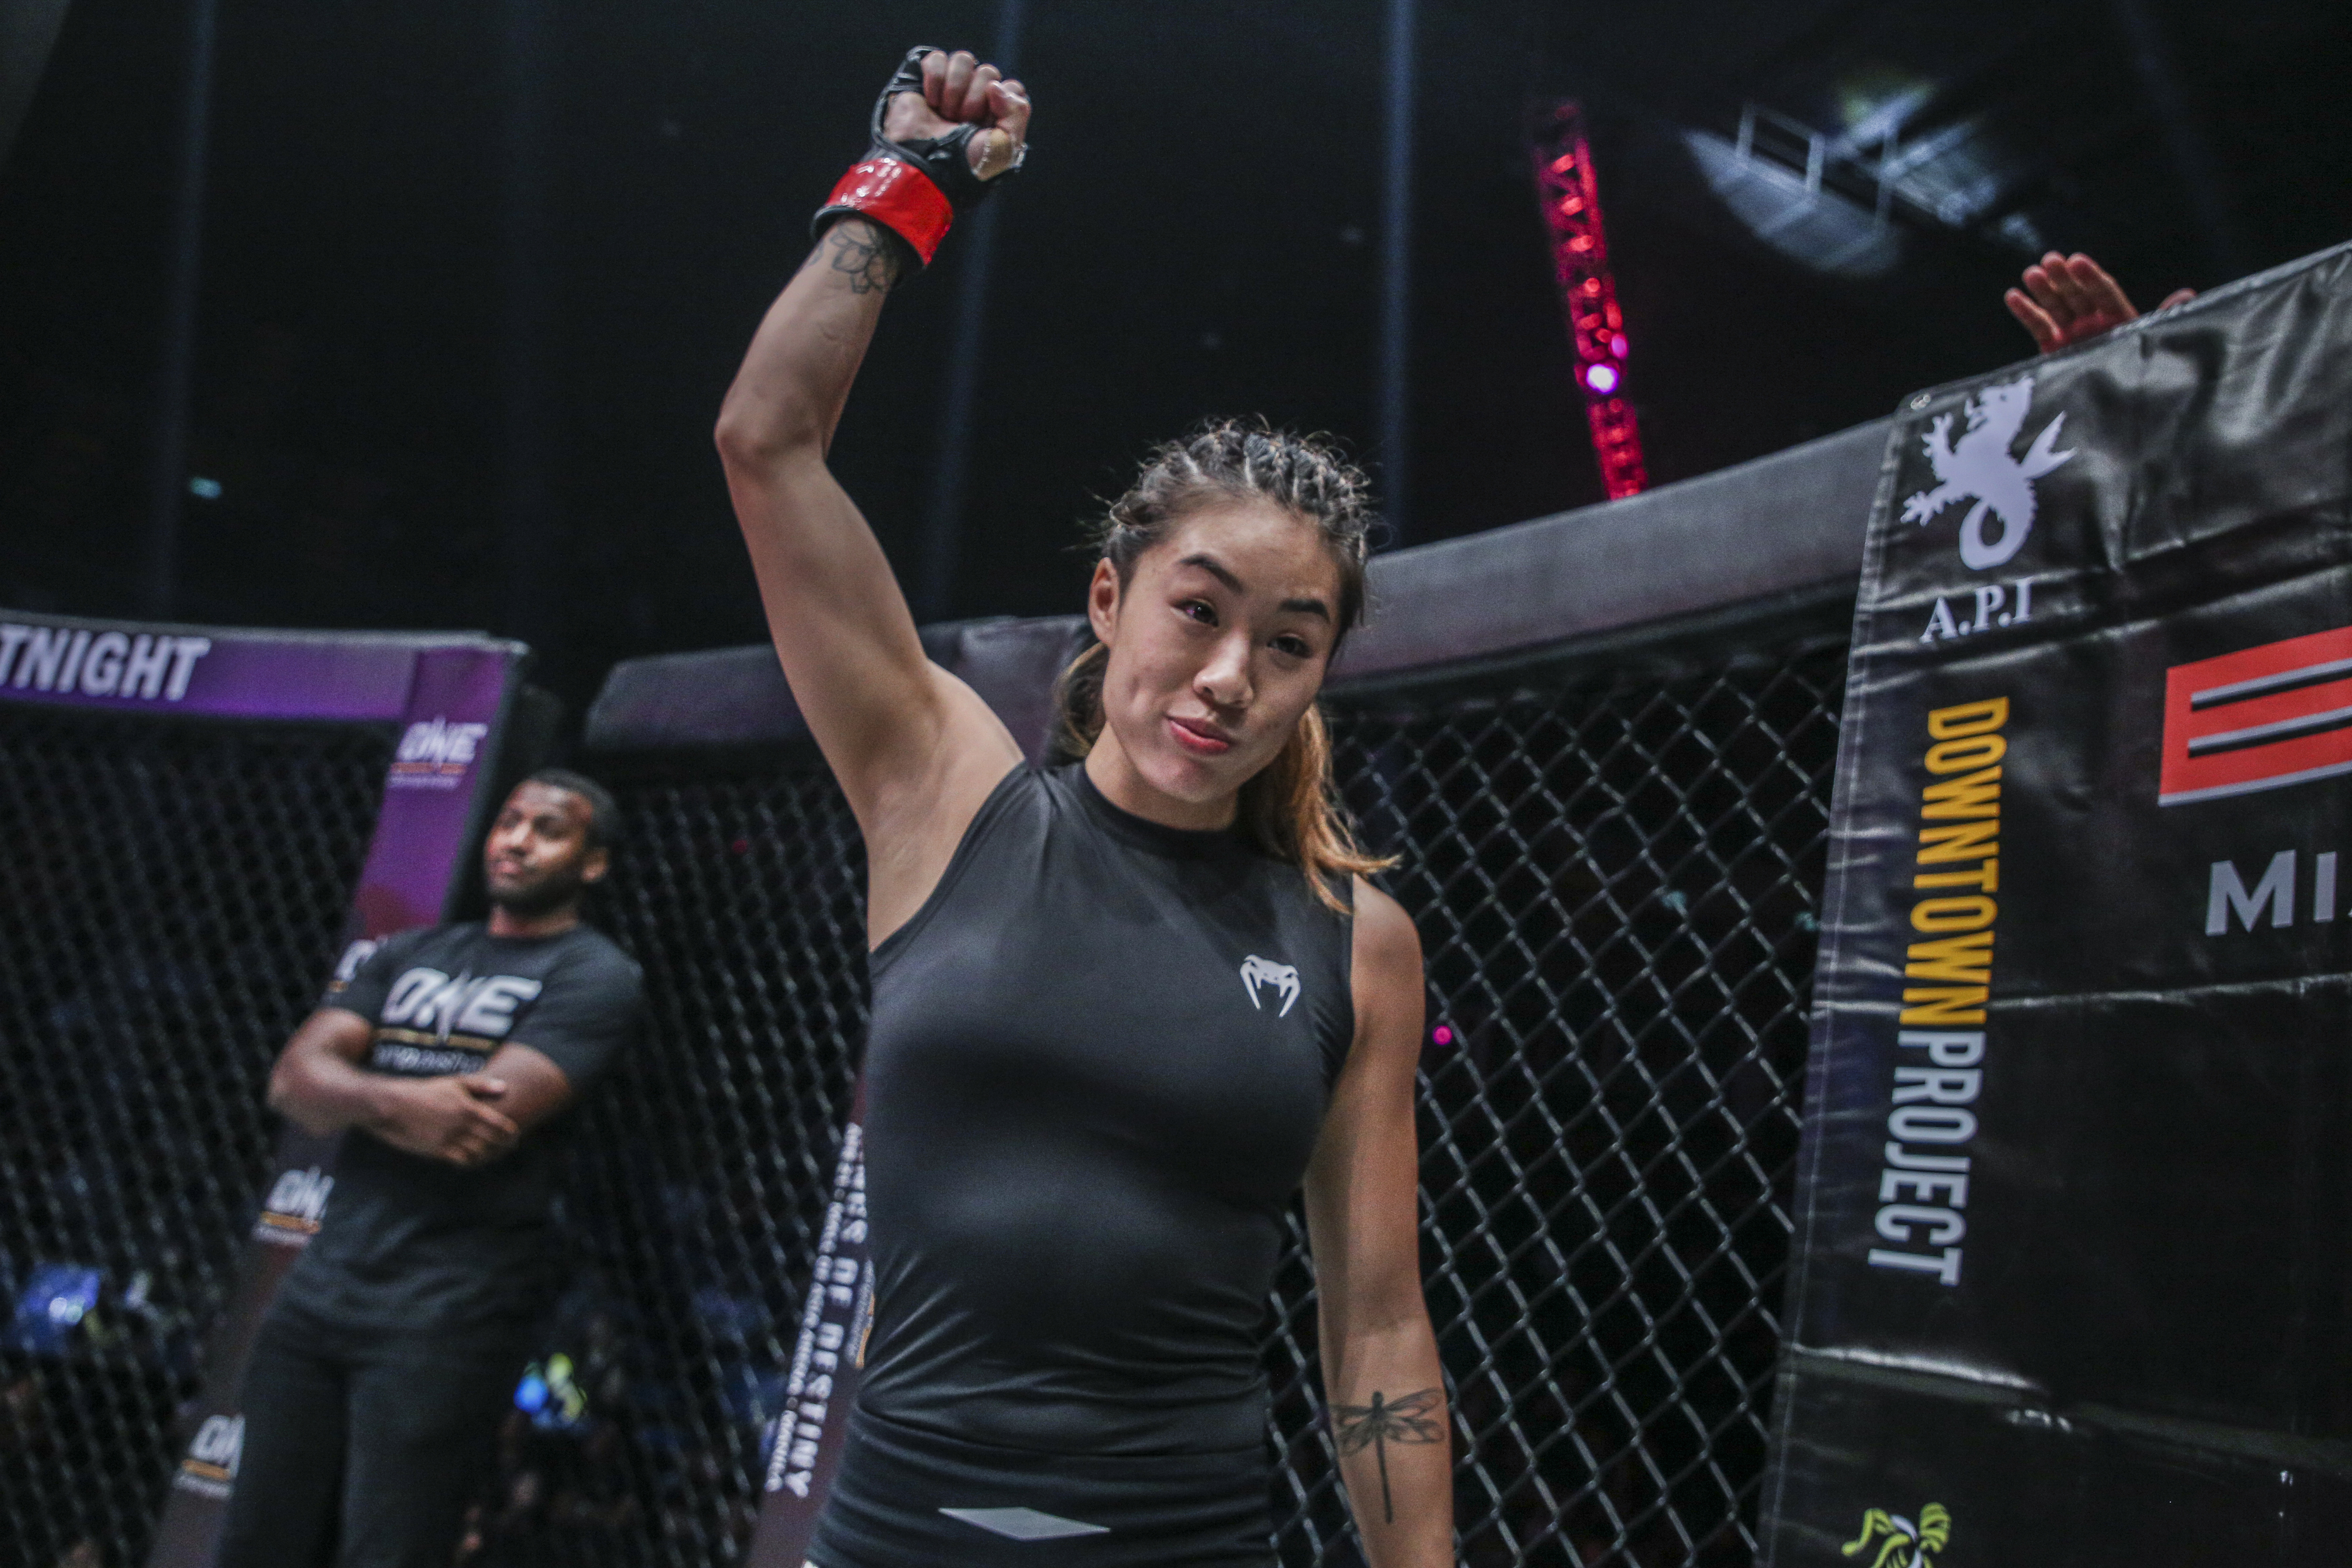 BANGKOK, THAILAND - MARCH 11: Angela Lee prepares to face Jenny Huang in the main event of the ONE Championship: Warrior Kingdom event at the Impact Arena on March 11, 2017 in Bangkok, Thailand. (Photo by Dux Carvajal/ONE Championship/Getty Images)